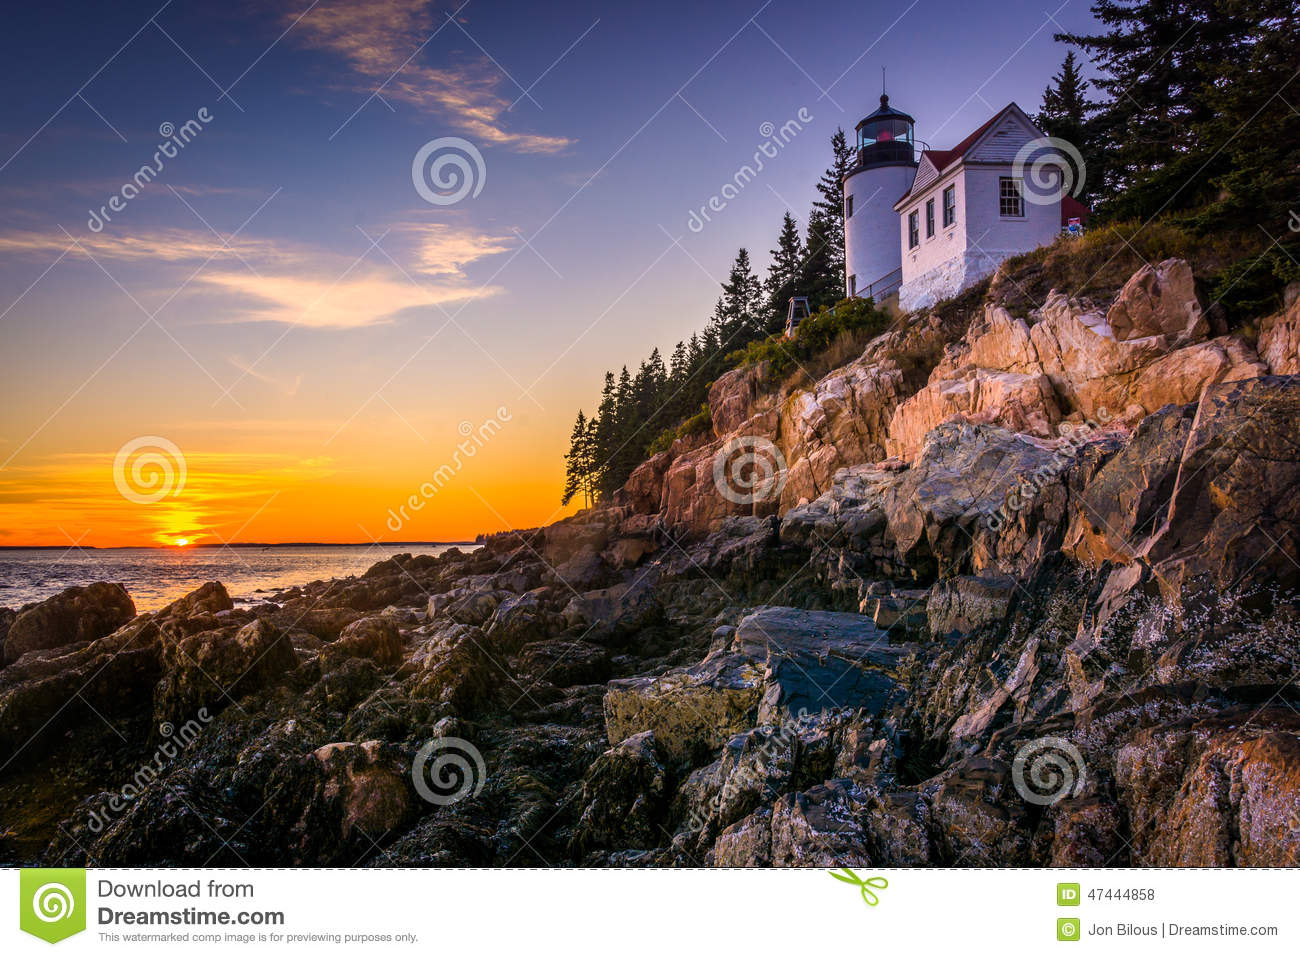 Bass Harbor Lighthouse at sunset, in Acadia National Park, Maine